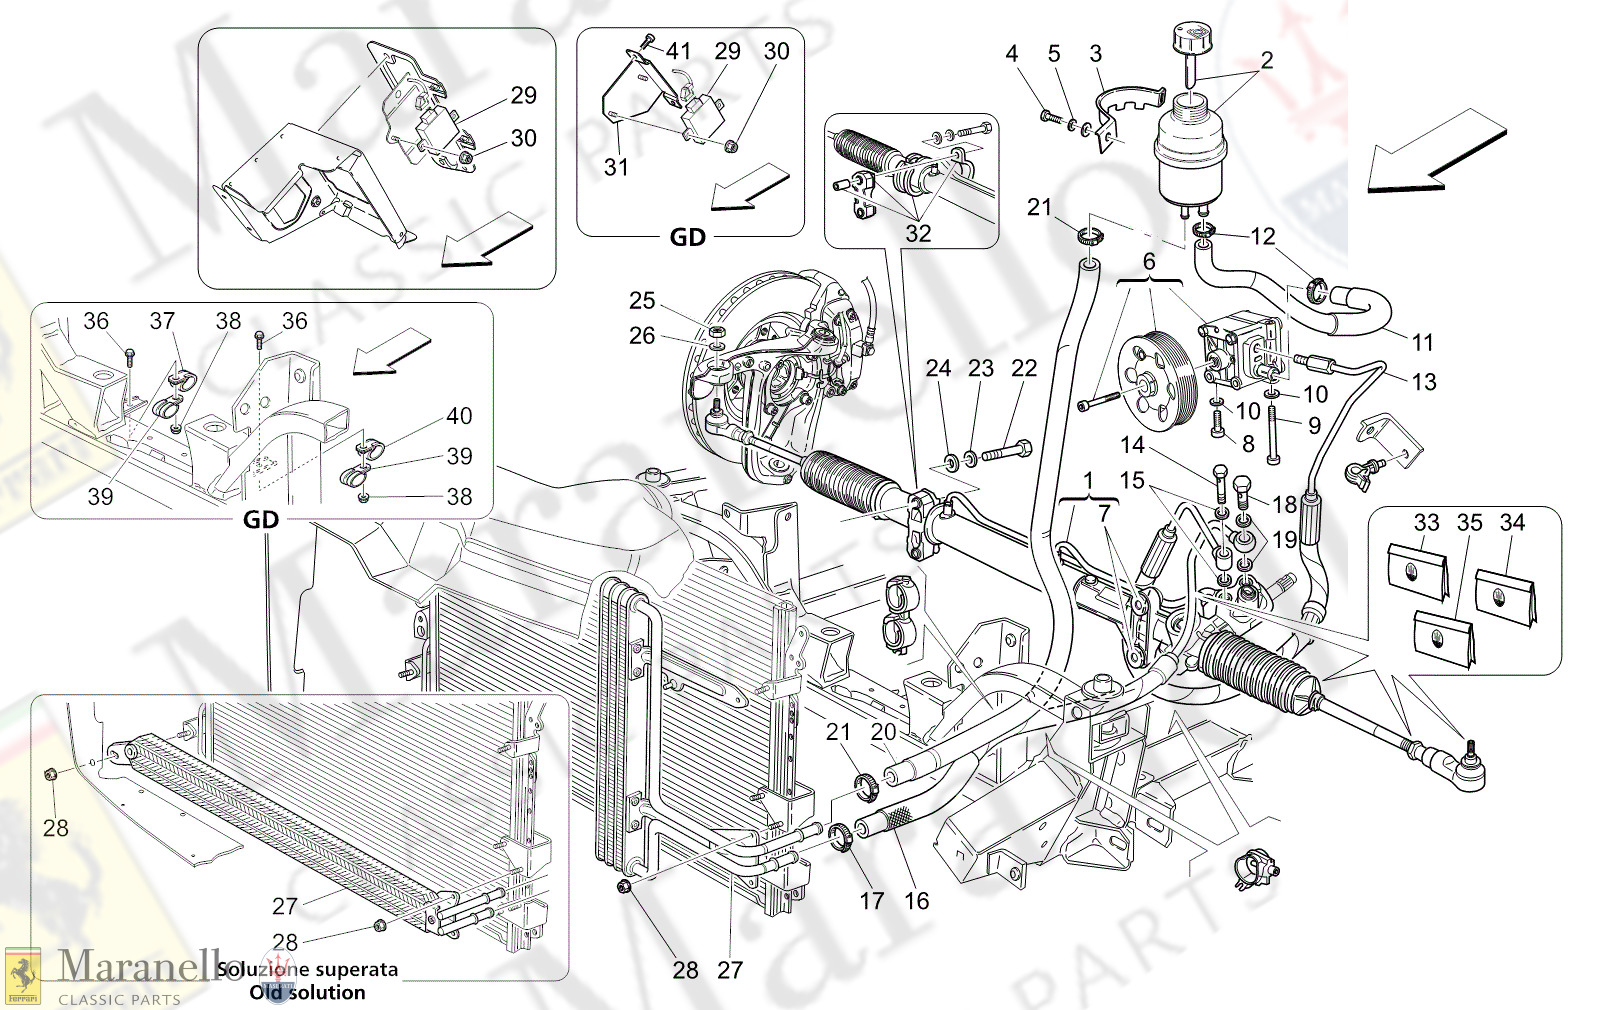 05.10 - 12 - 0510 - 12 Complete Steering Rack Unit